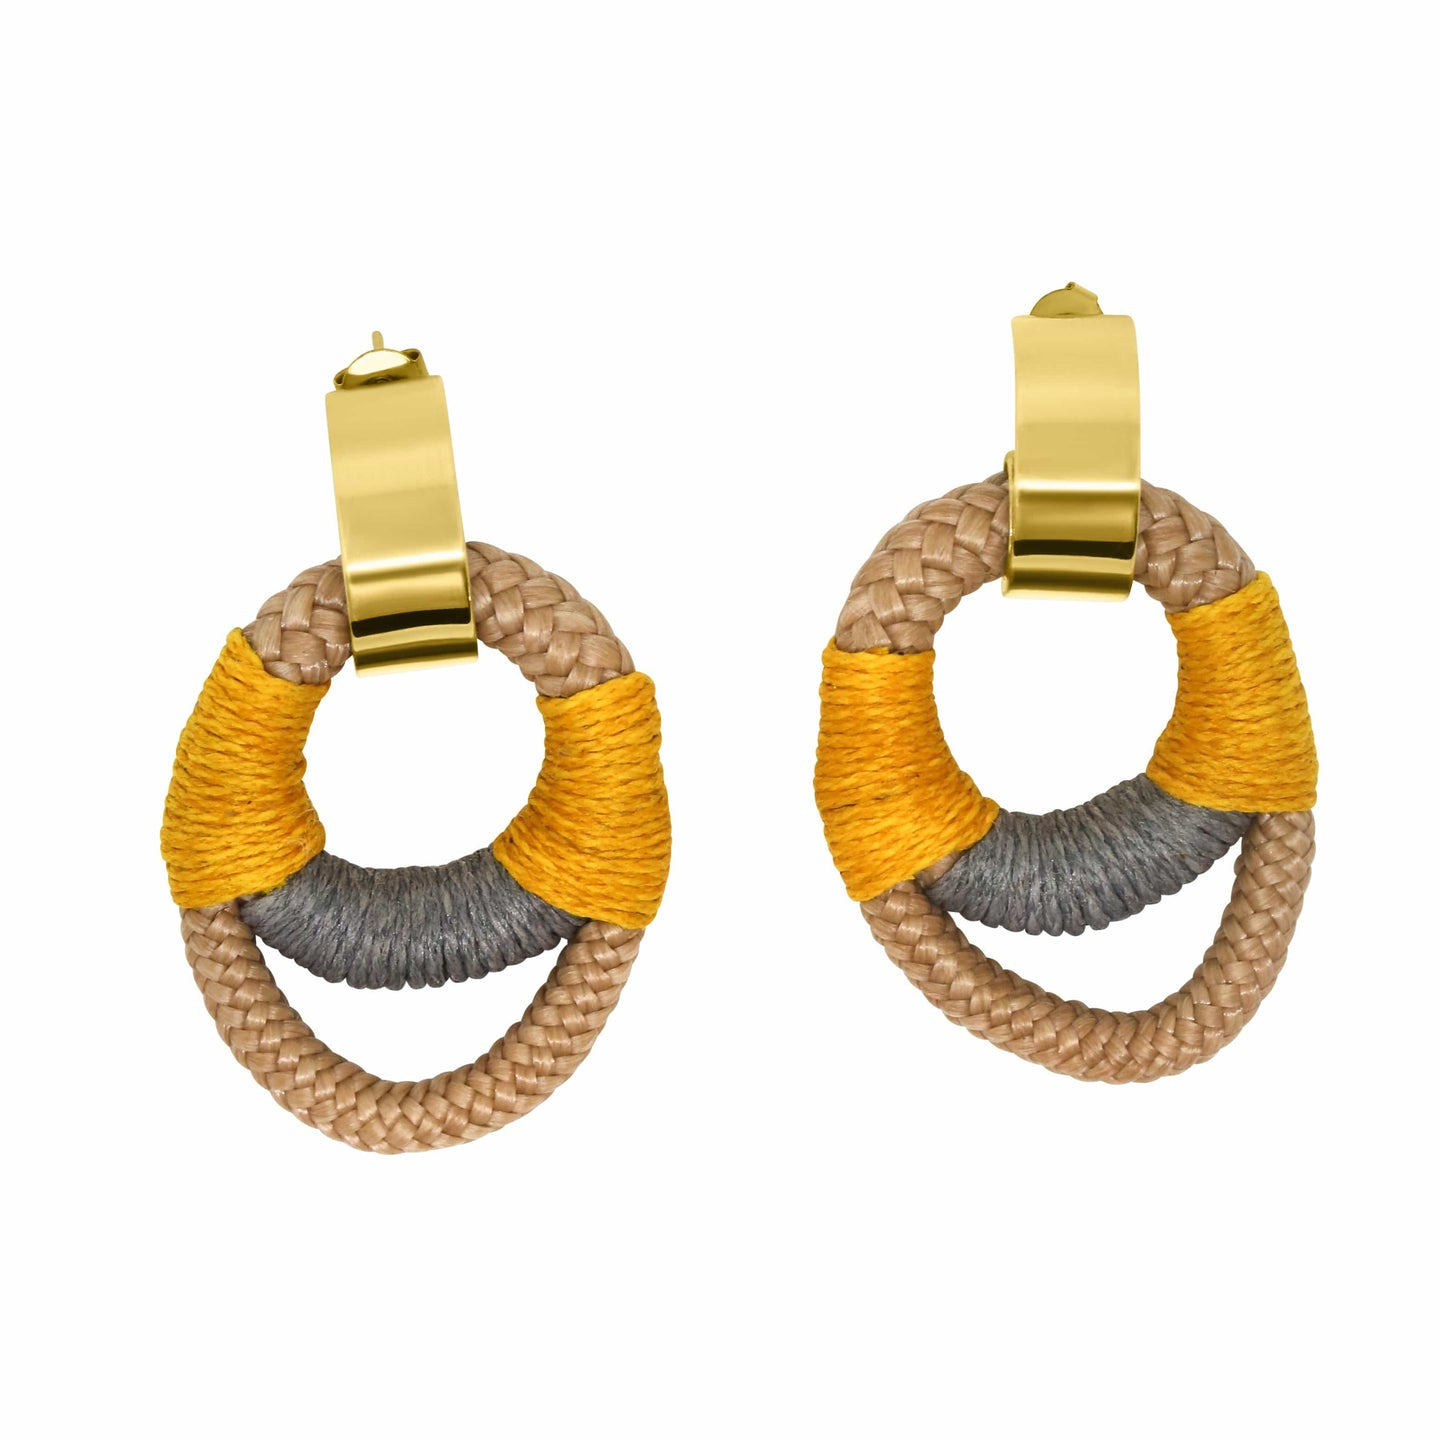 MyJulz- Standout Circle Earrings (Egg Yoke yellow and grey embellished rope earrings with 22k gold caps)